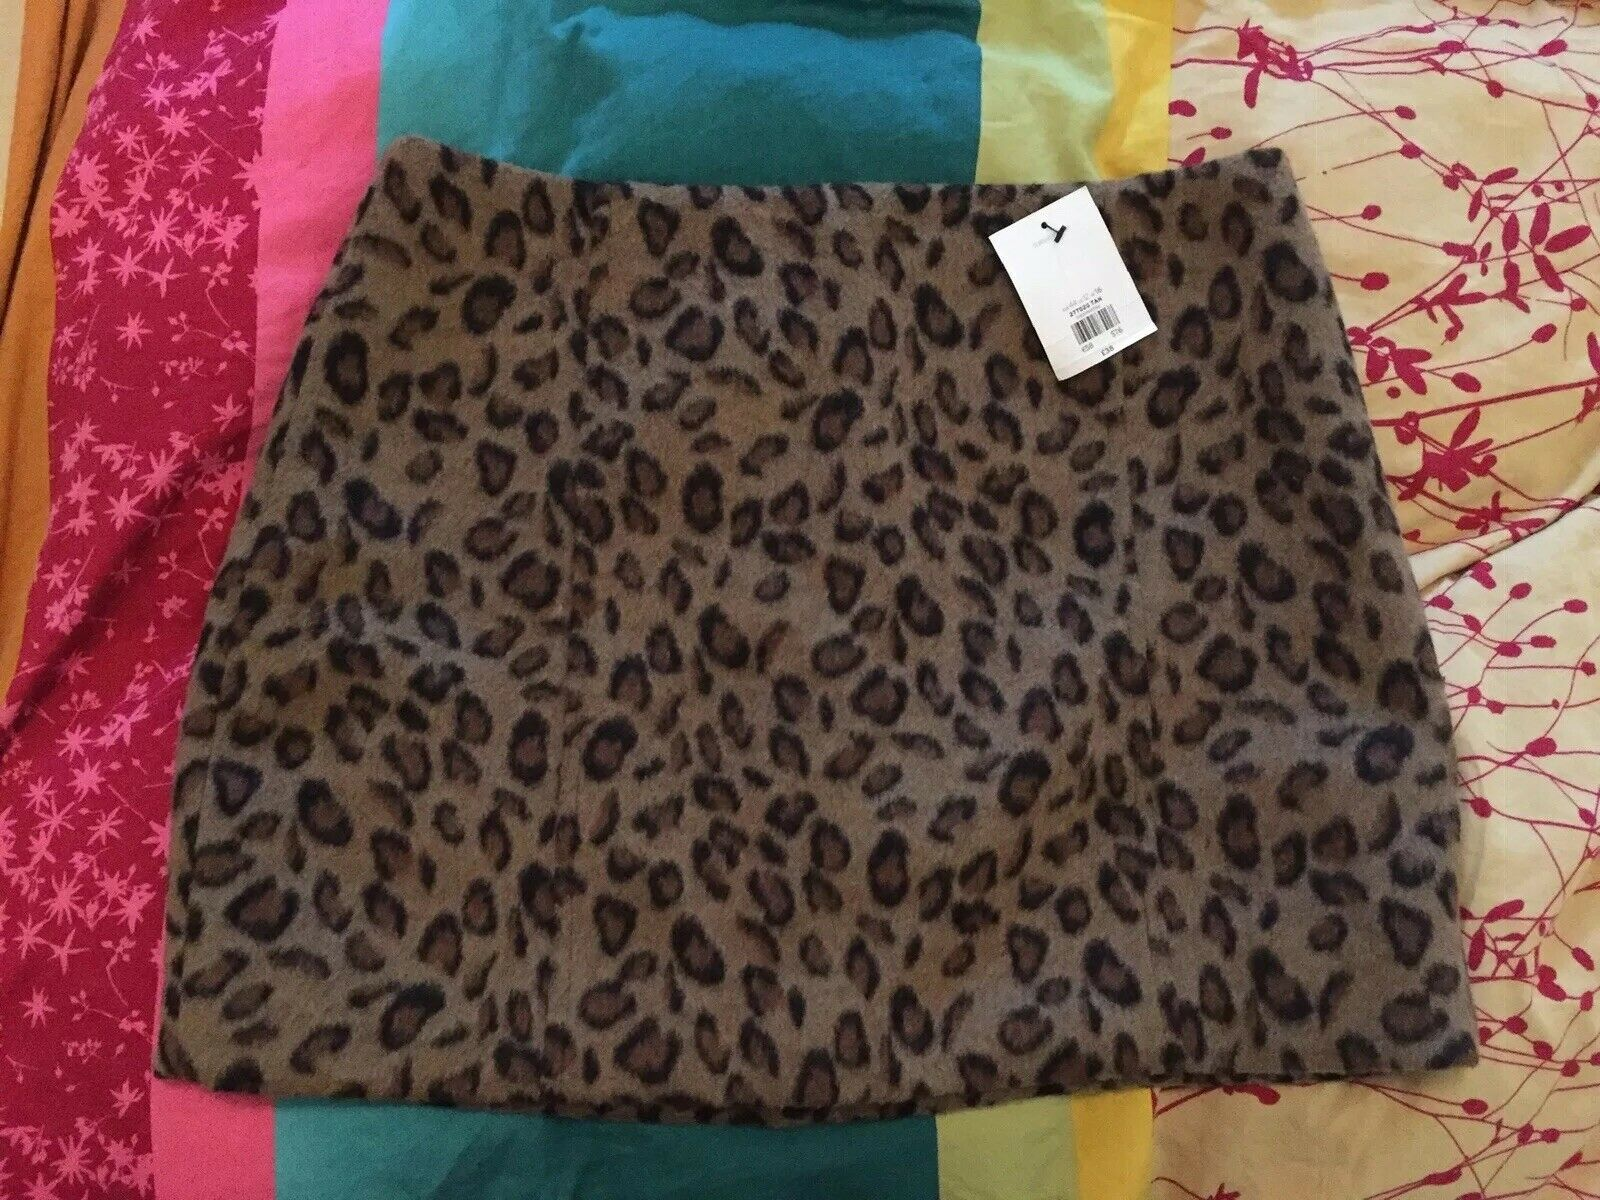 BNWT Topshop Leopard Brushed Wool Skirt - size 16